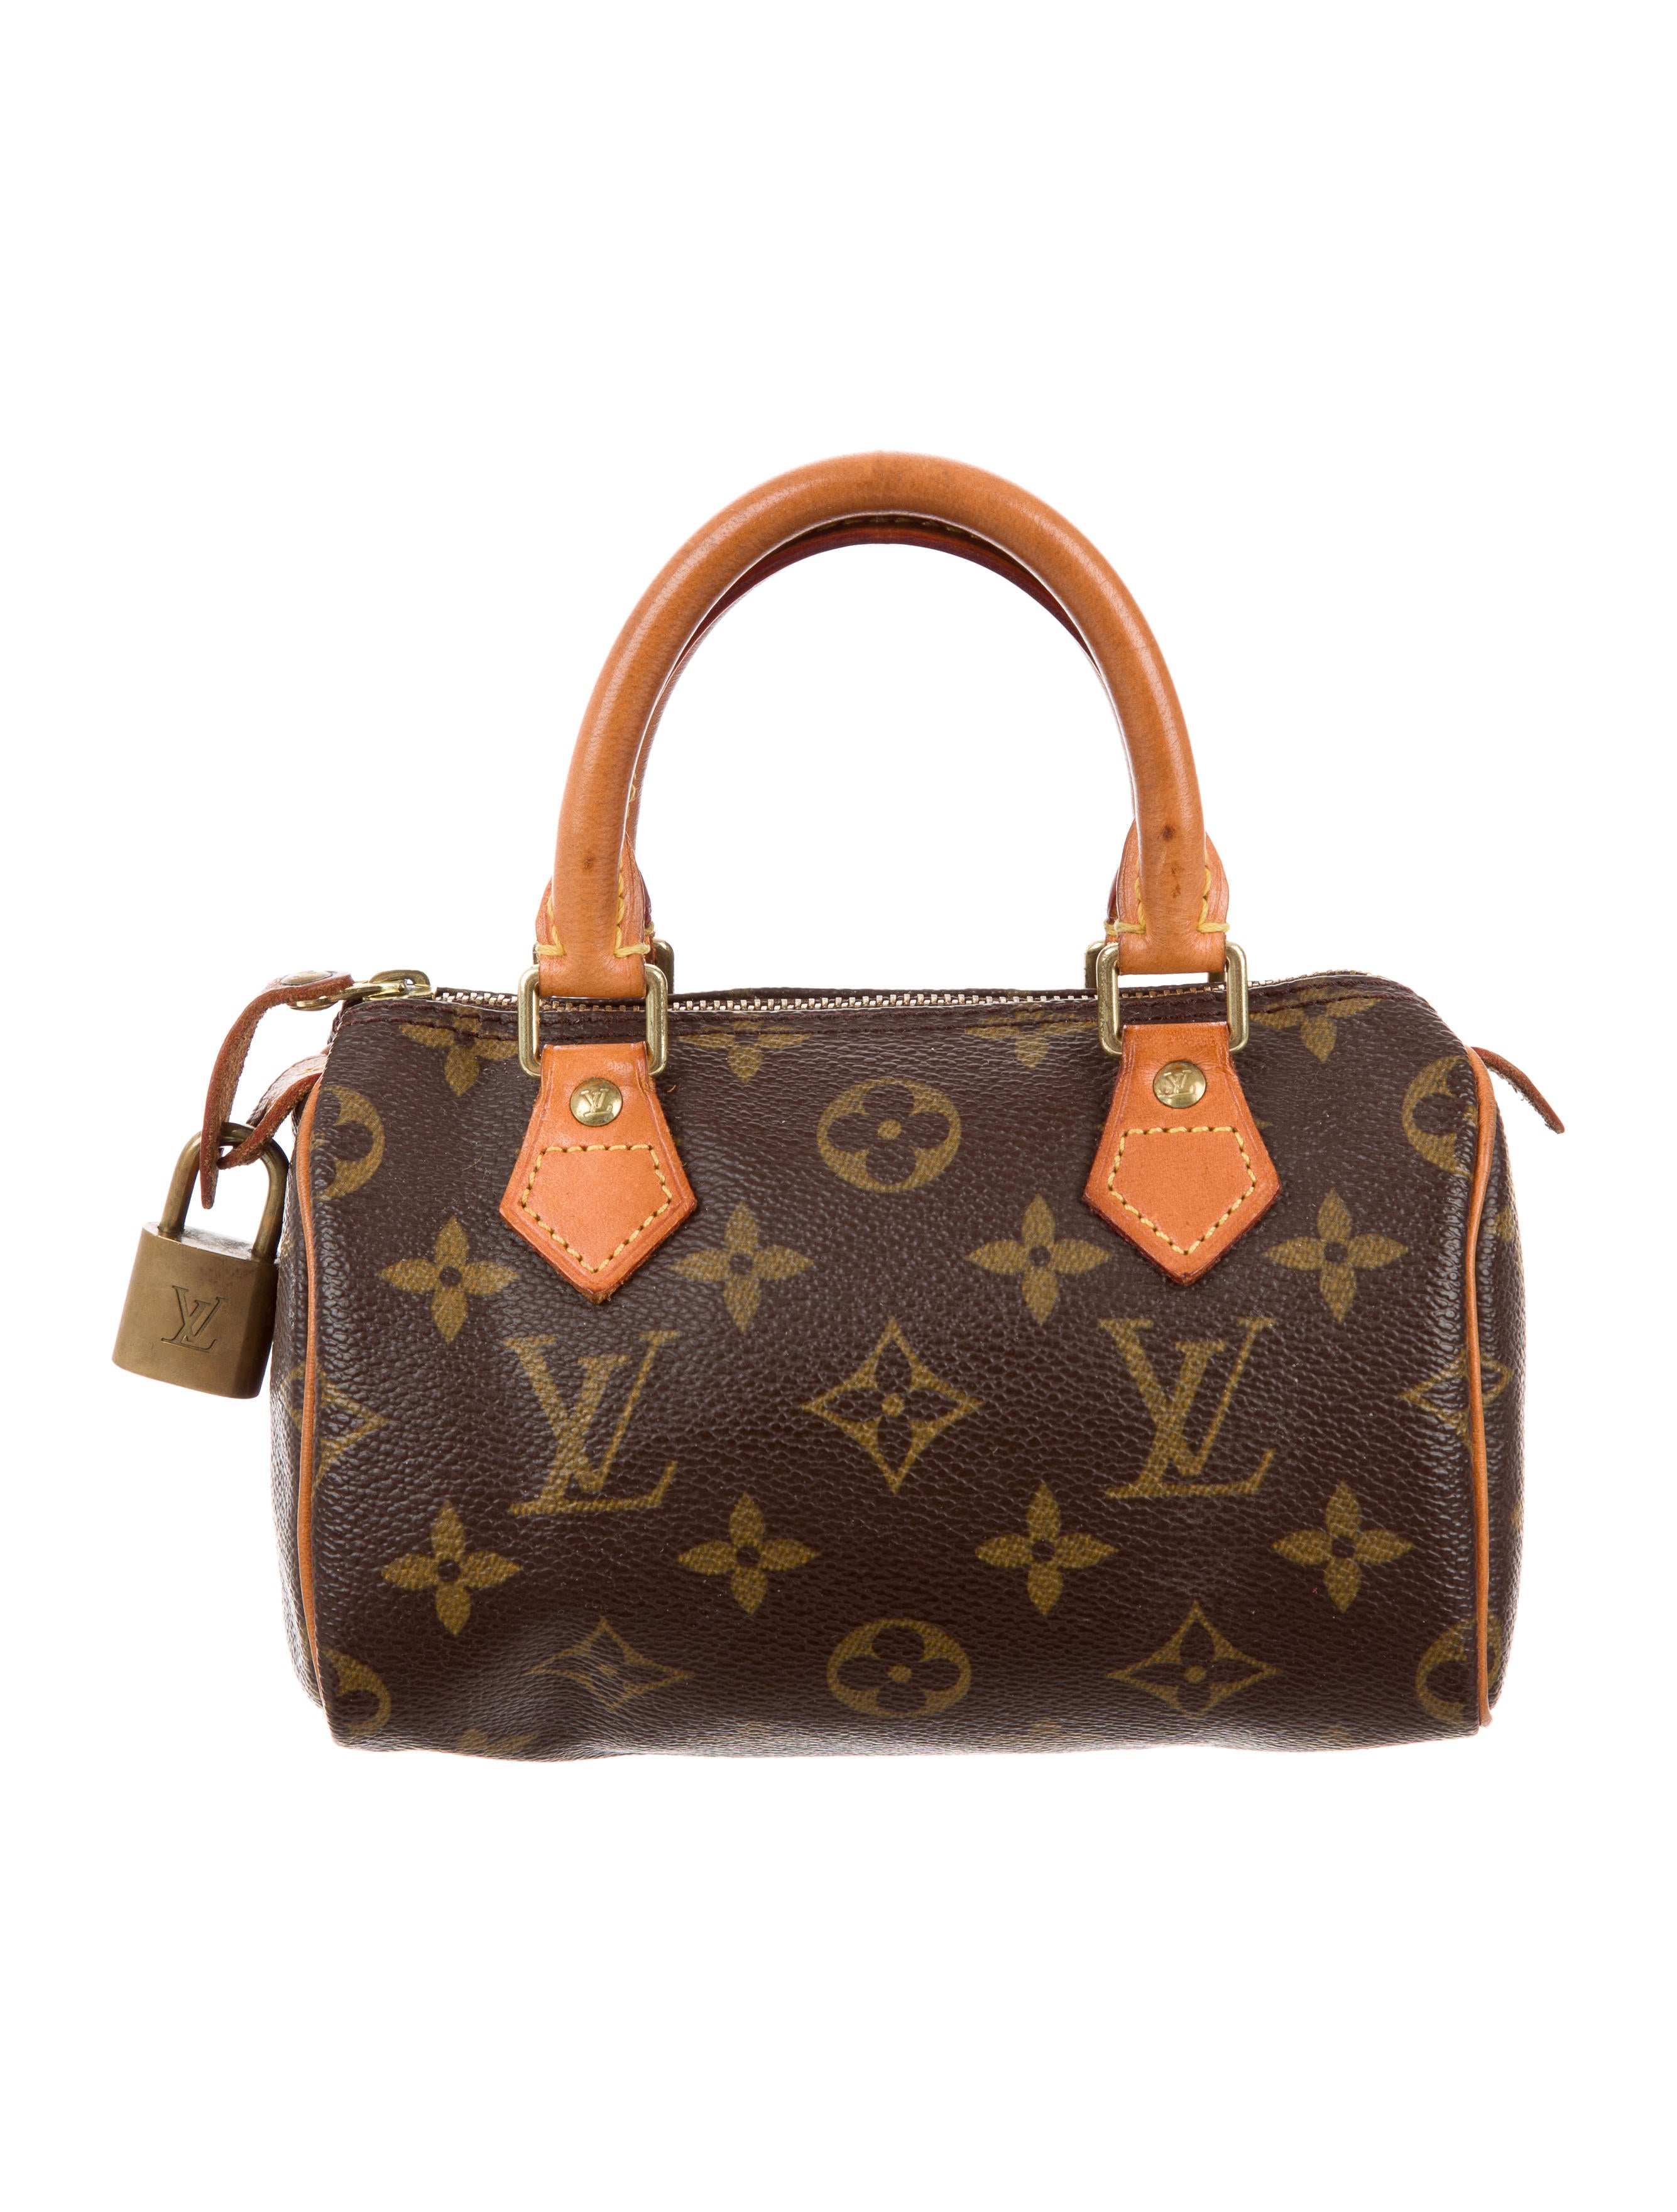 4ps of louis vuitton Louis vuitton becoming successful in the luxury  the current rise of profitability of louis vuitton is not a  strategies related to the first of the 4ps.